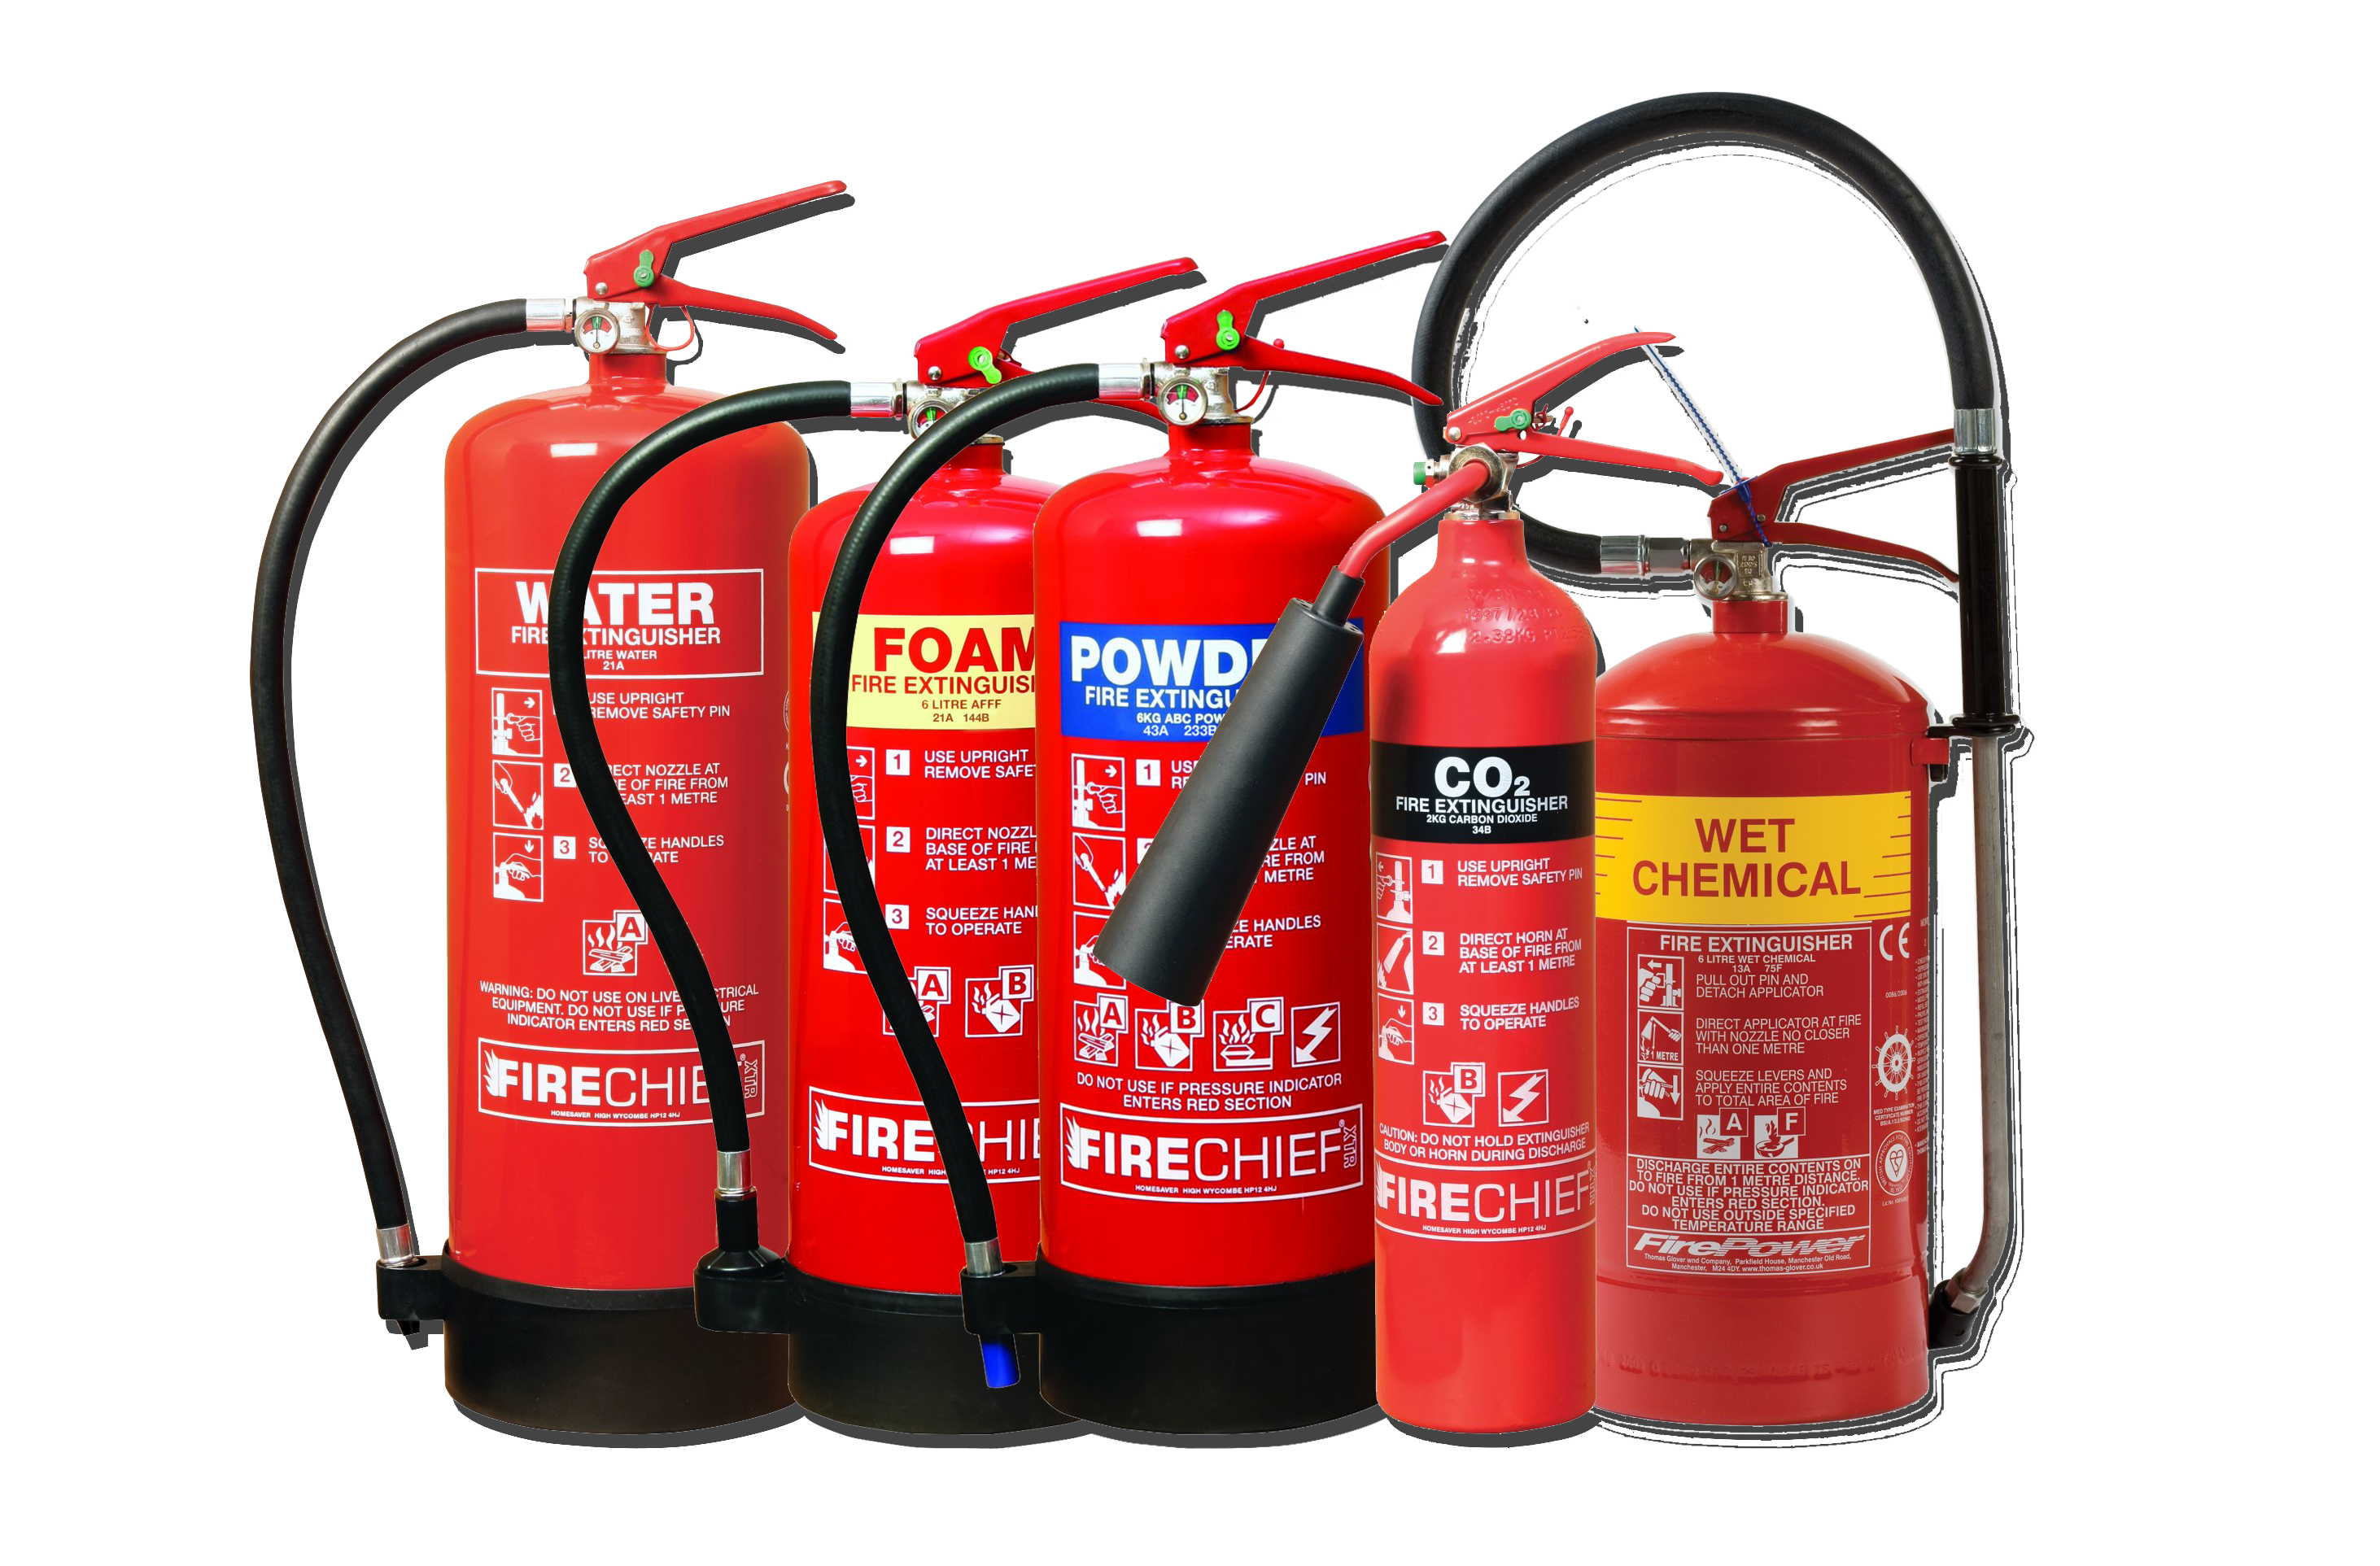 Training In Fire Safety Equipment Is Crucial Reveals